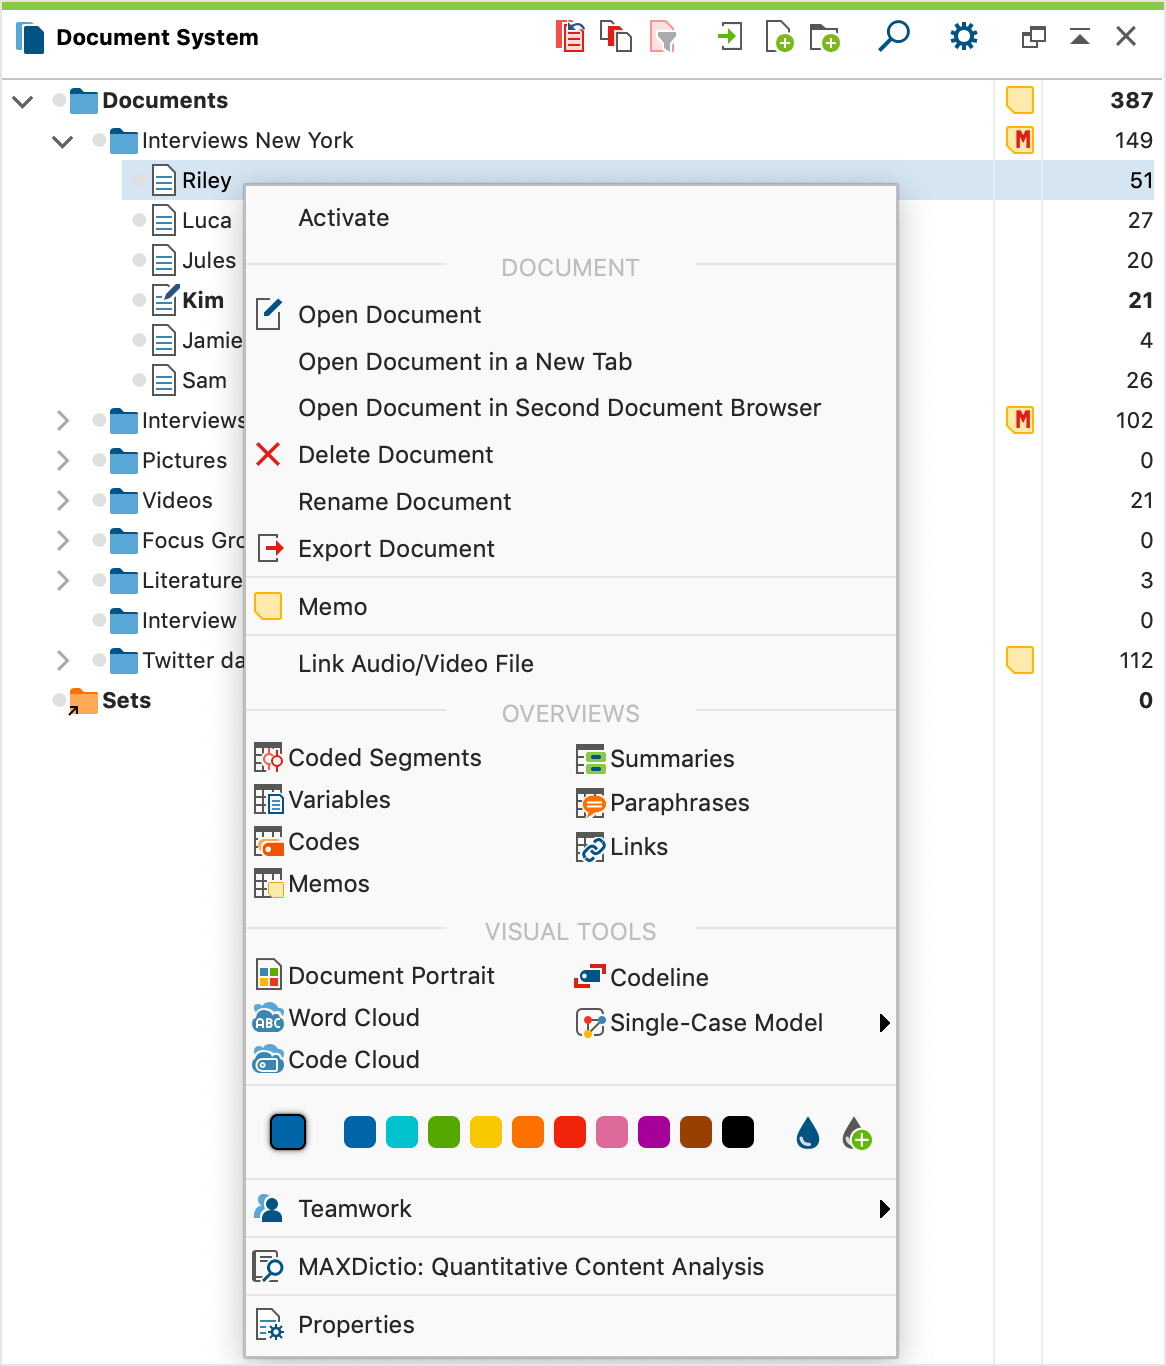 Context menu for the lowest (document) level